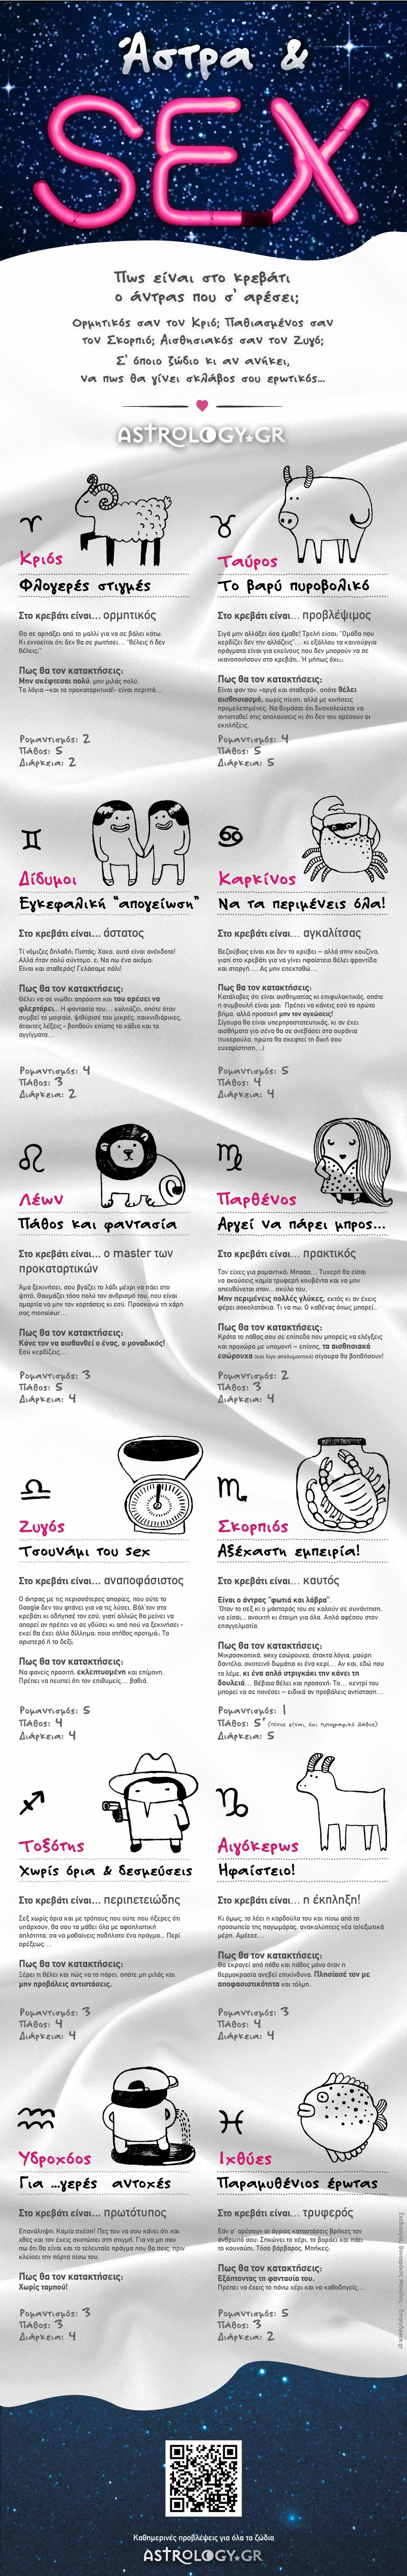 astrology_gr_infographic_1